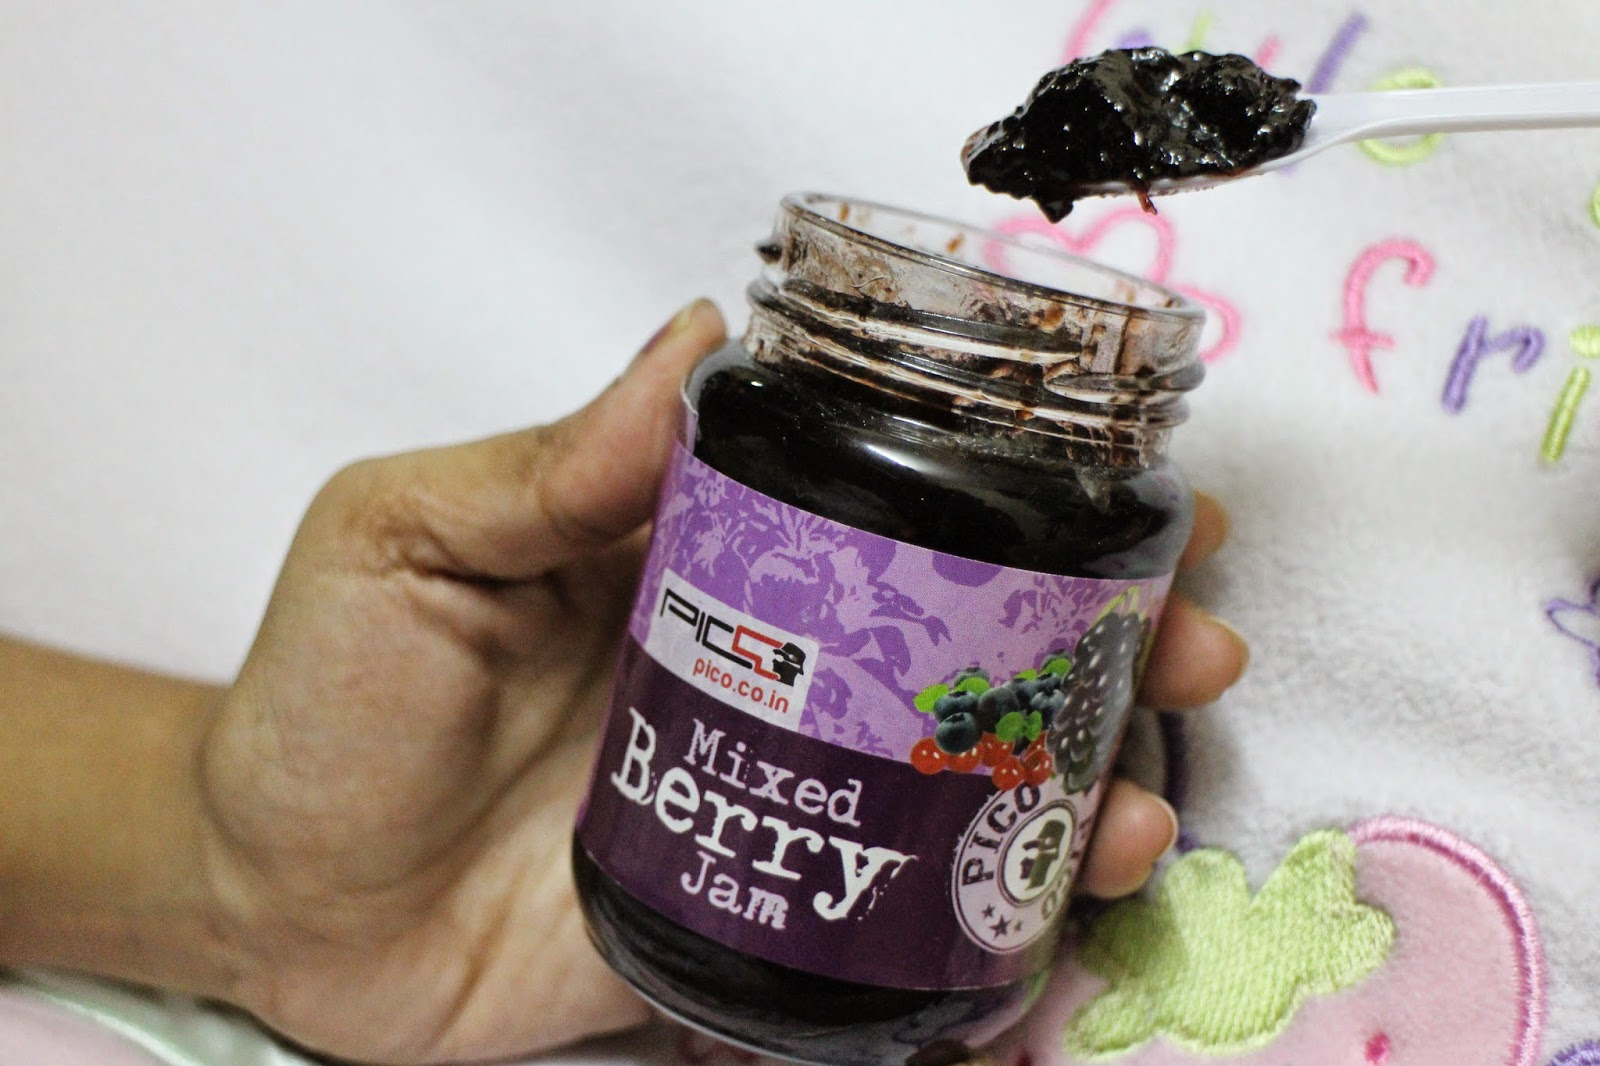 Godrej Nature's Basket, Pico, Jam, Mixed Berries Jam, Food